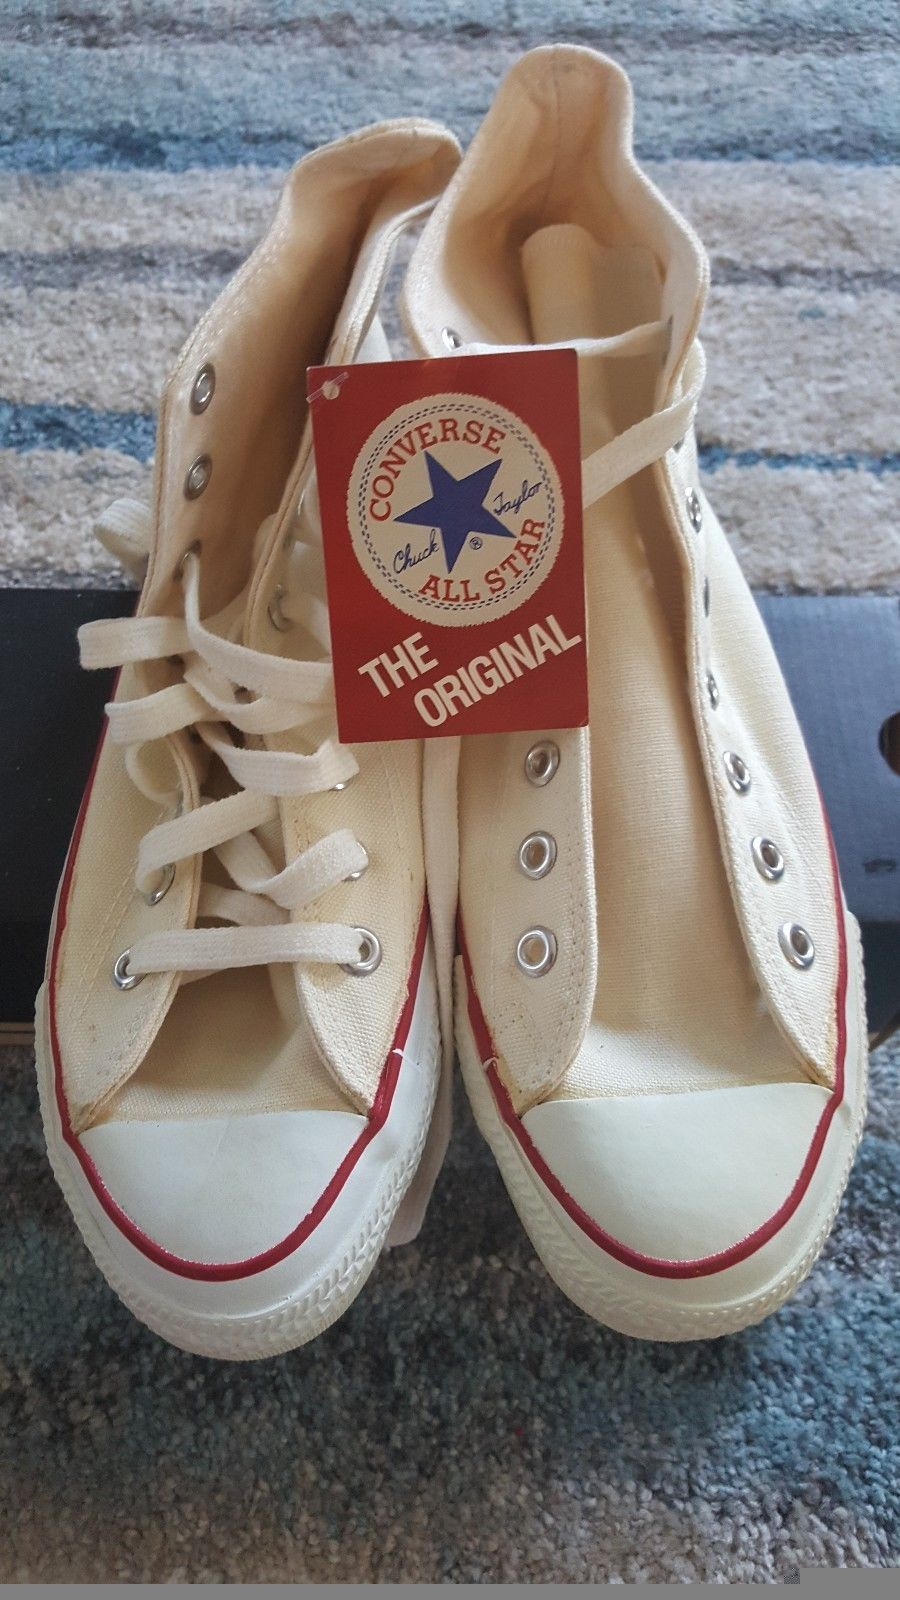 d31c4c1a3cb2 Details about VINTAGE 70s CONVERSE CHUCK TAYLOR ALL STAR HIGH TOP ...